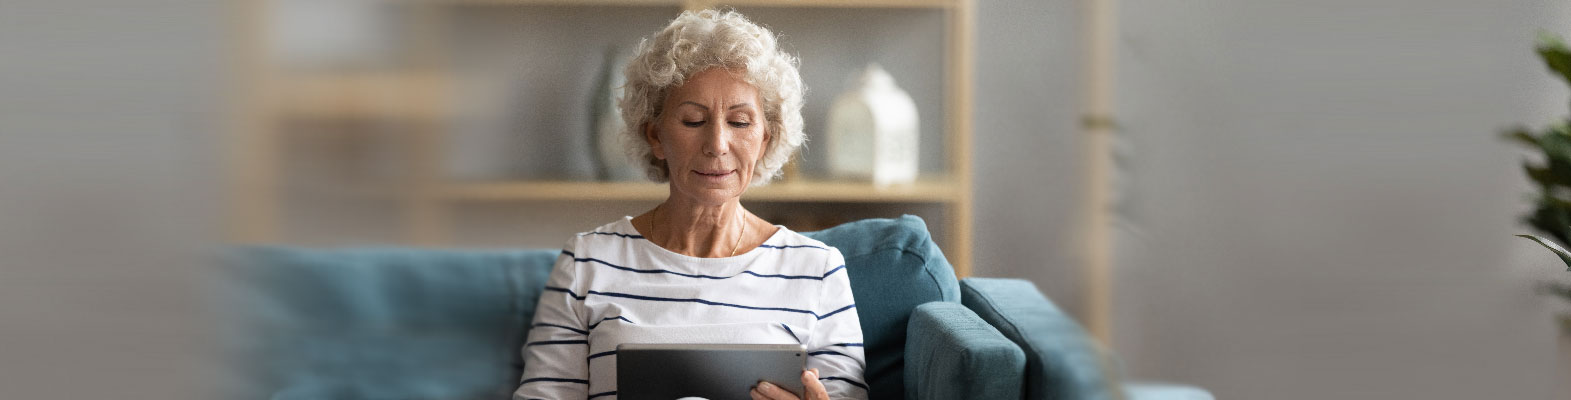 older woman looking at her tablet